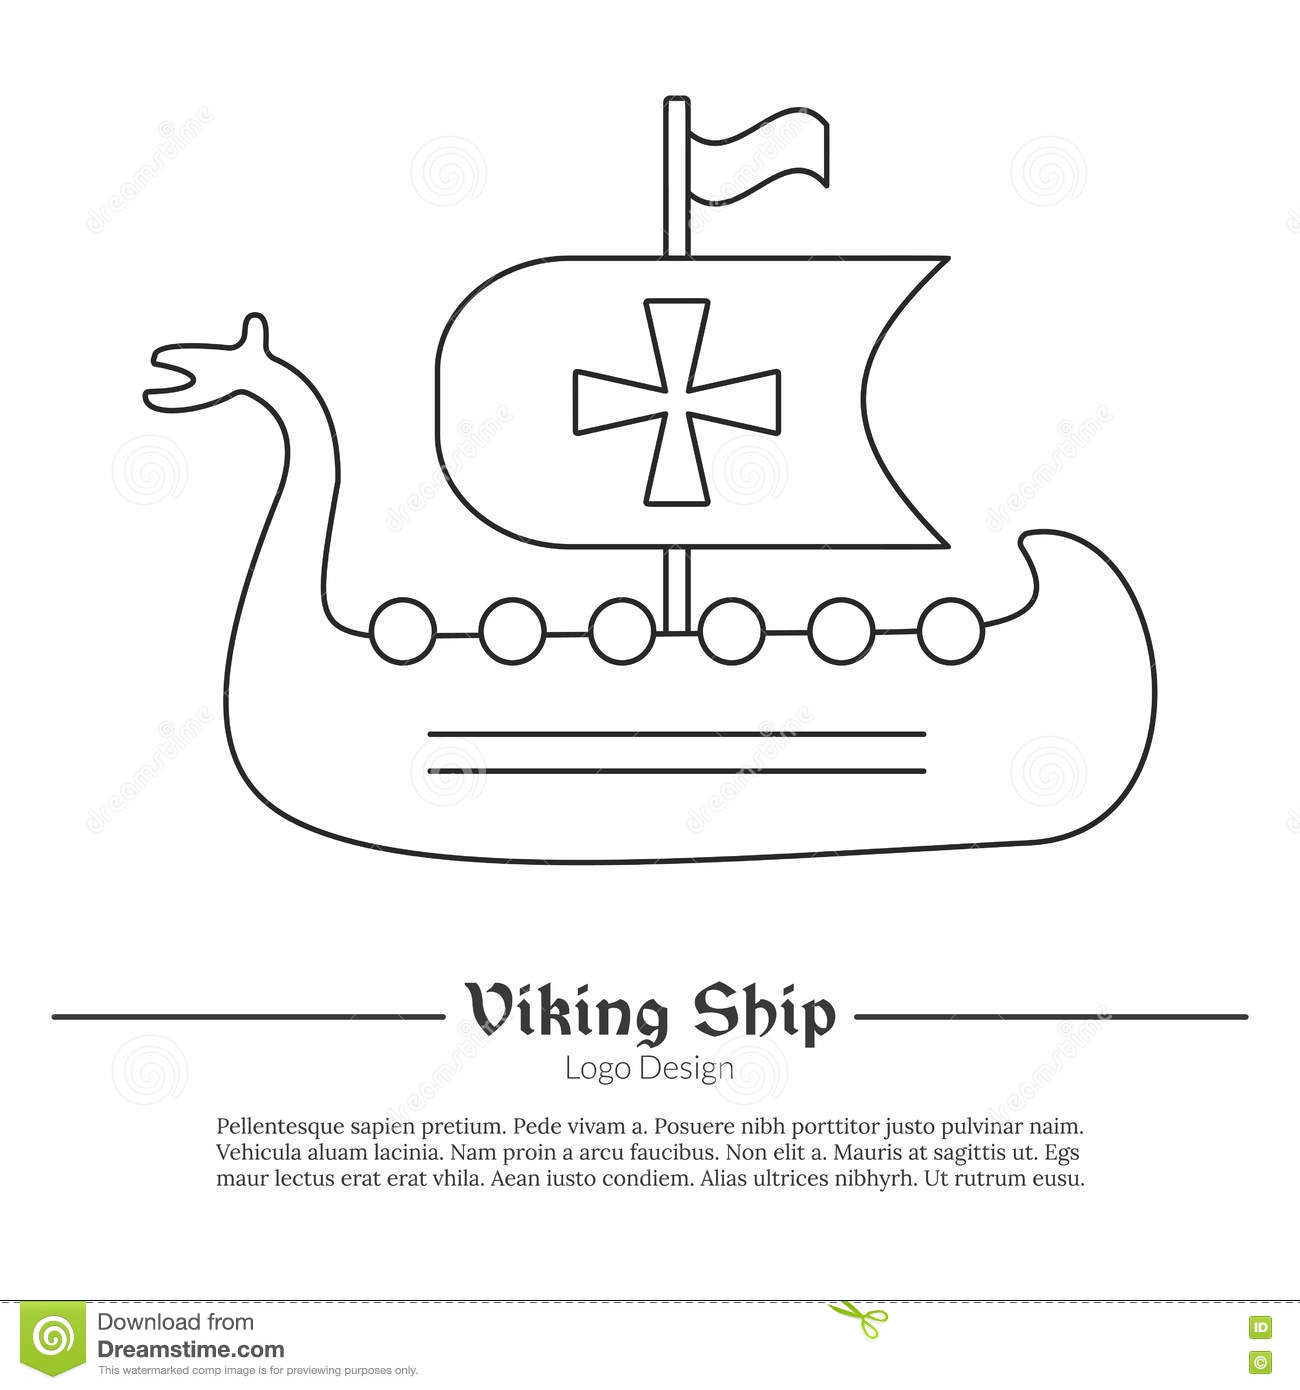 Medieval Viking Ship Boat Single Logo In Modern Thin Line Style Isolated On White Background Outline Theme Symbol Simple Mono Linear Pictogram